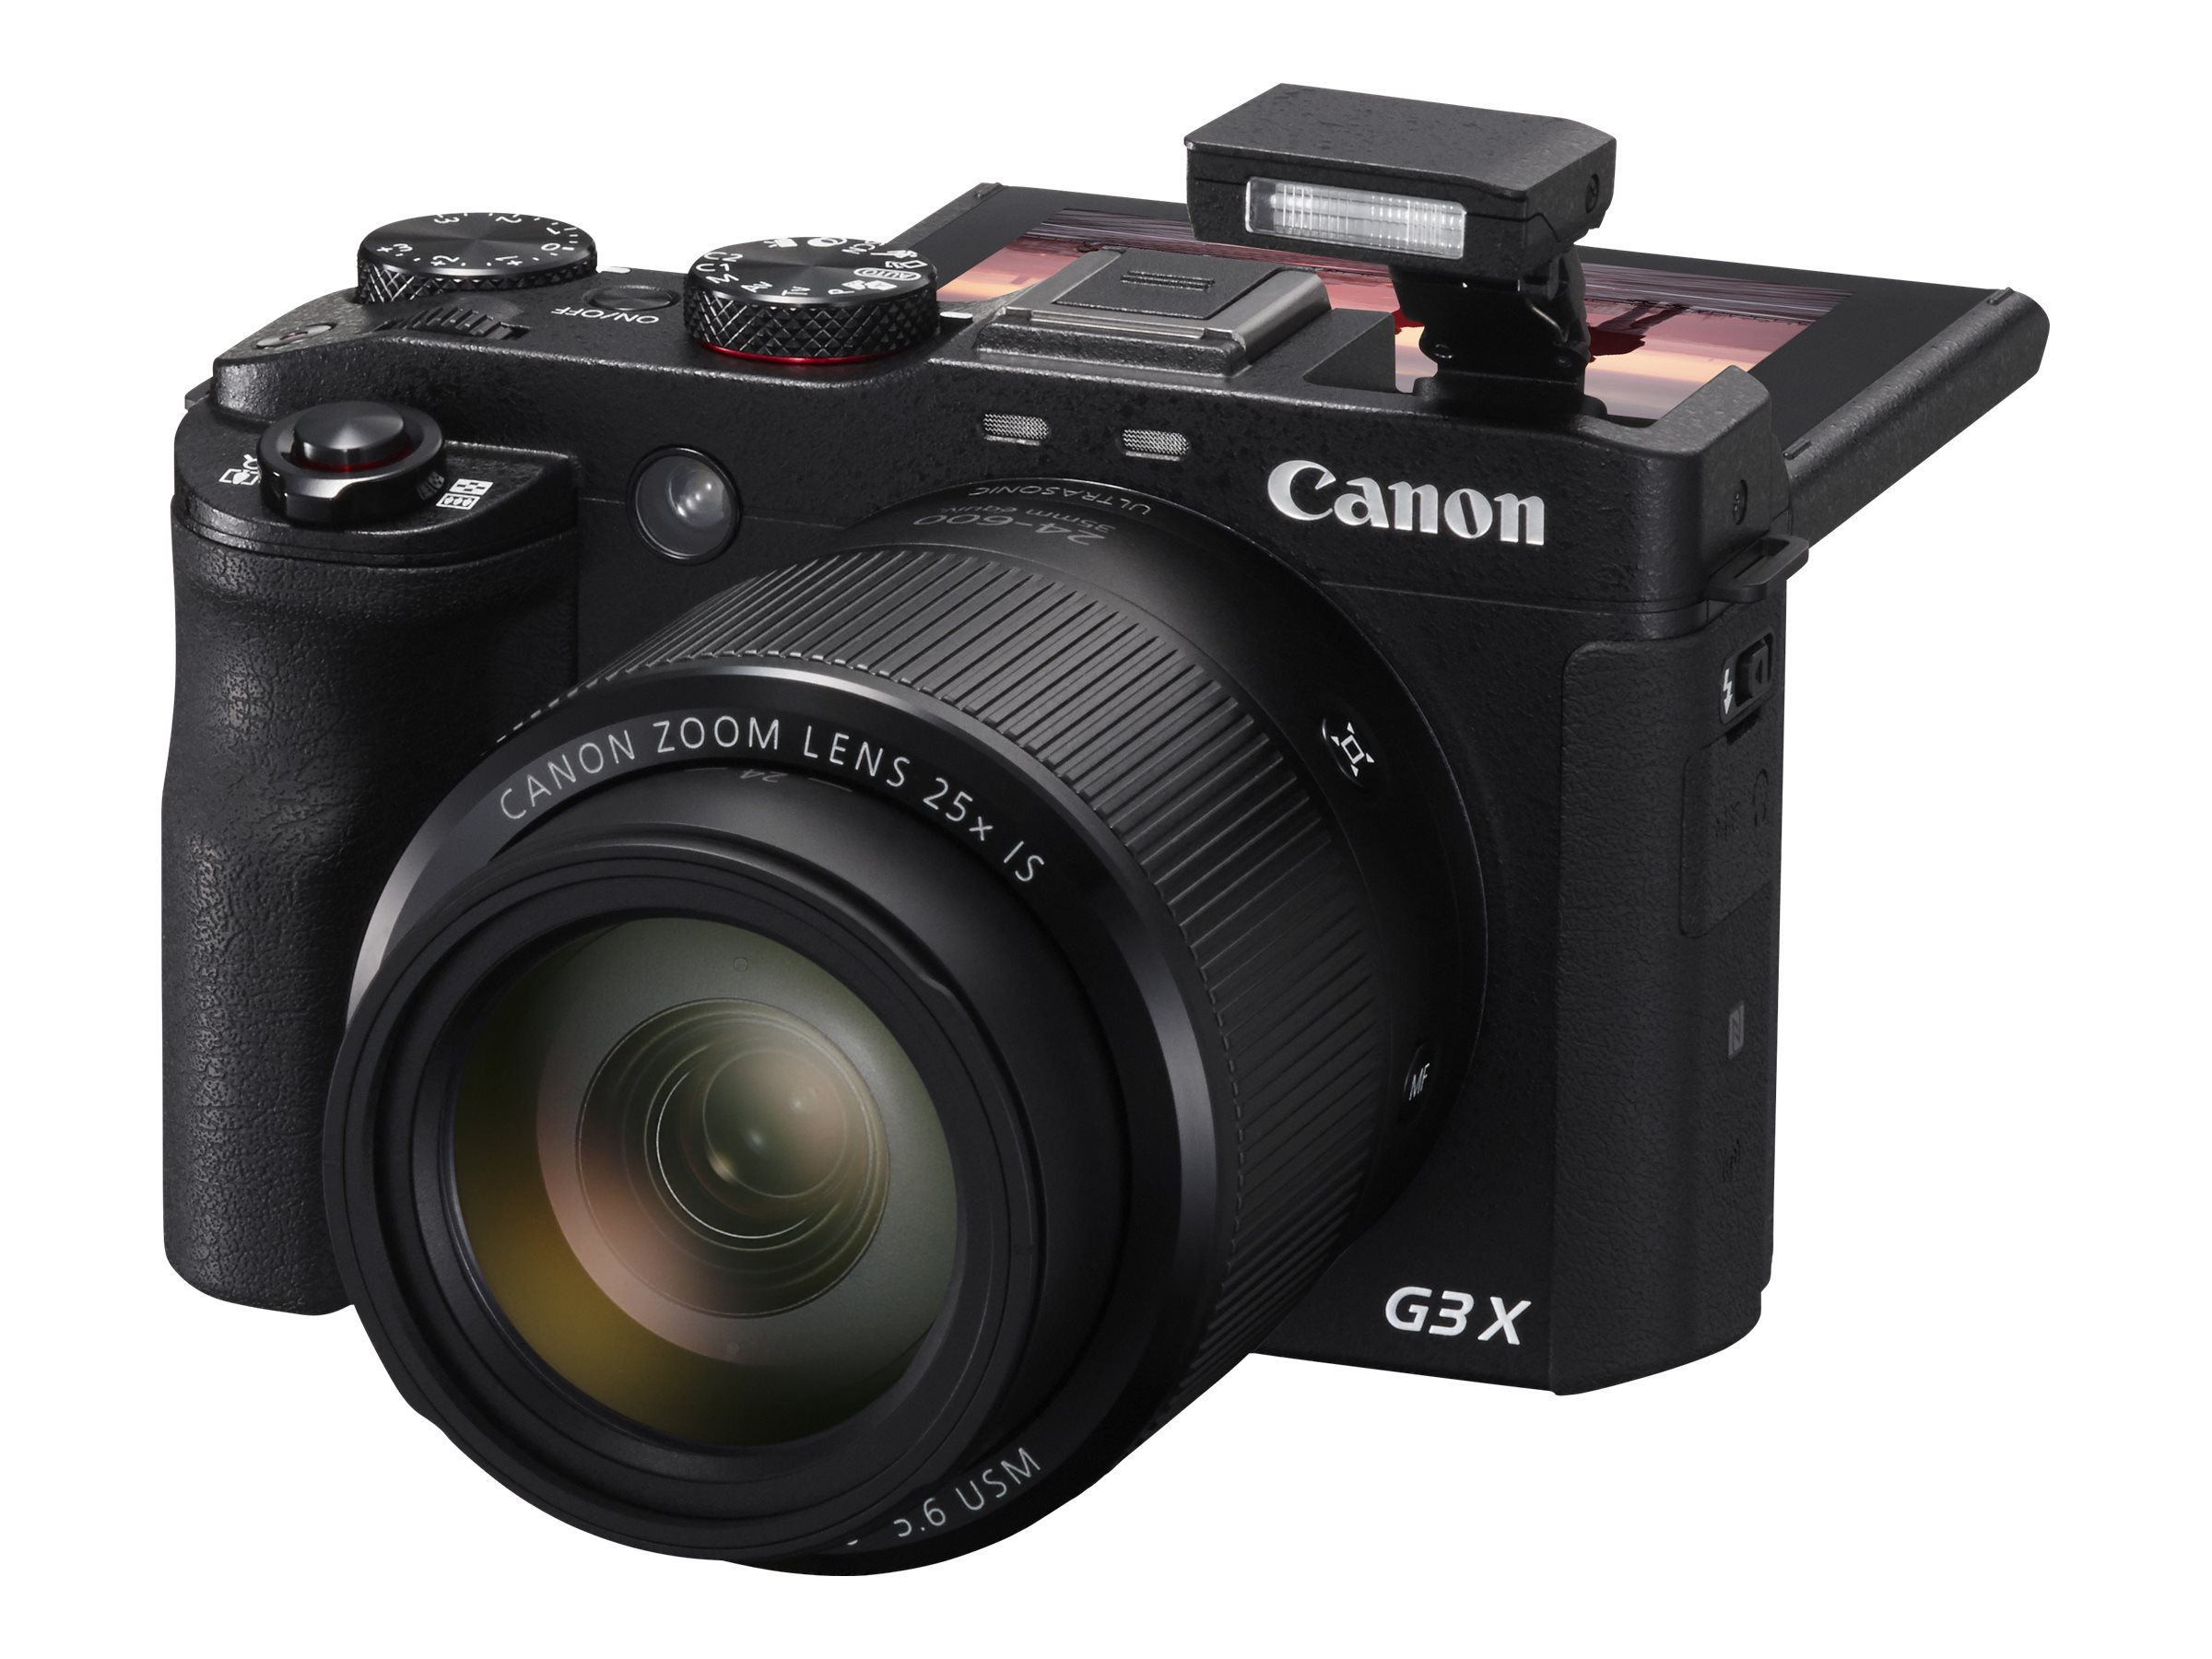 Canon PowerShot G3 X Camera, 20.2MP, 25x Zoom, Black, 0106C001